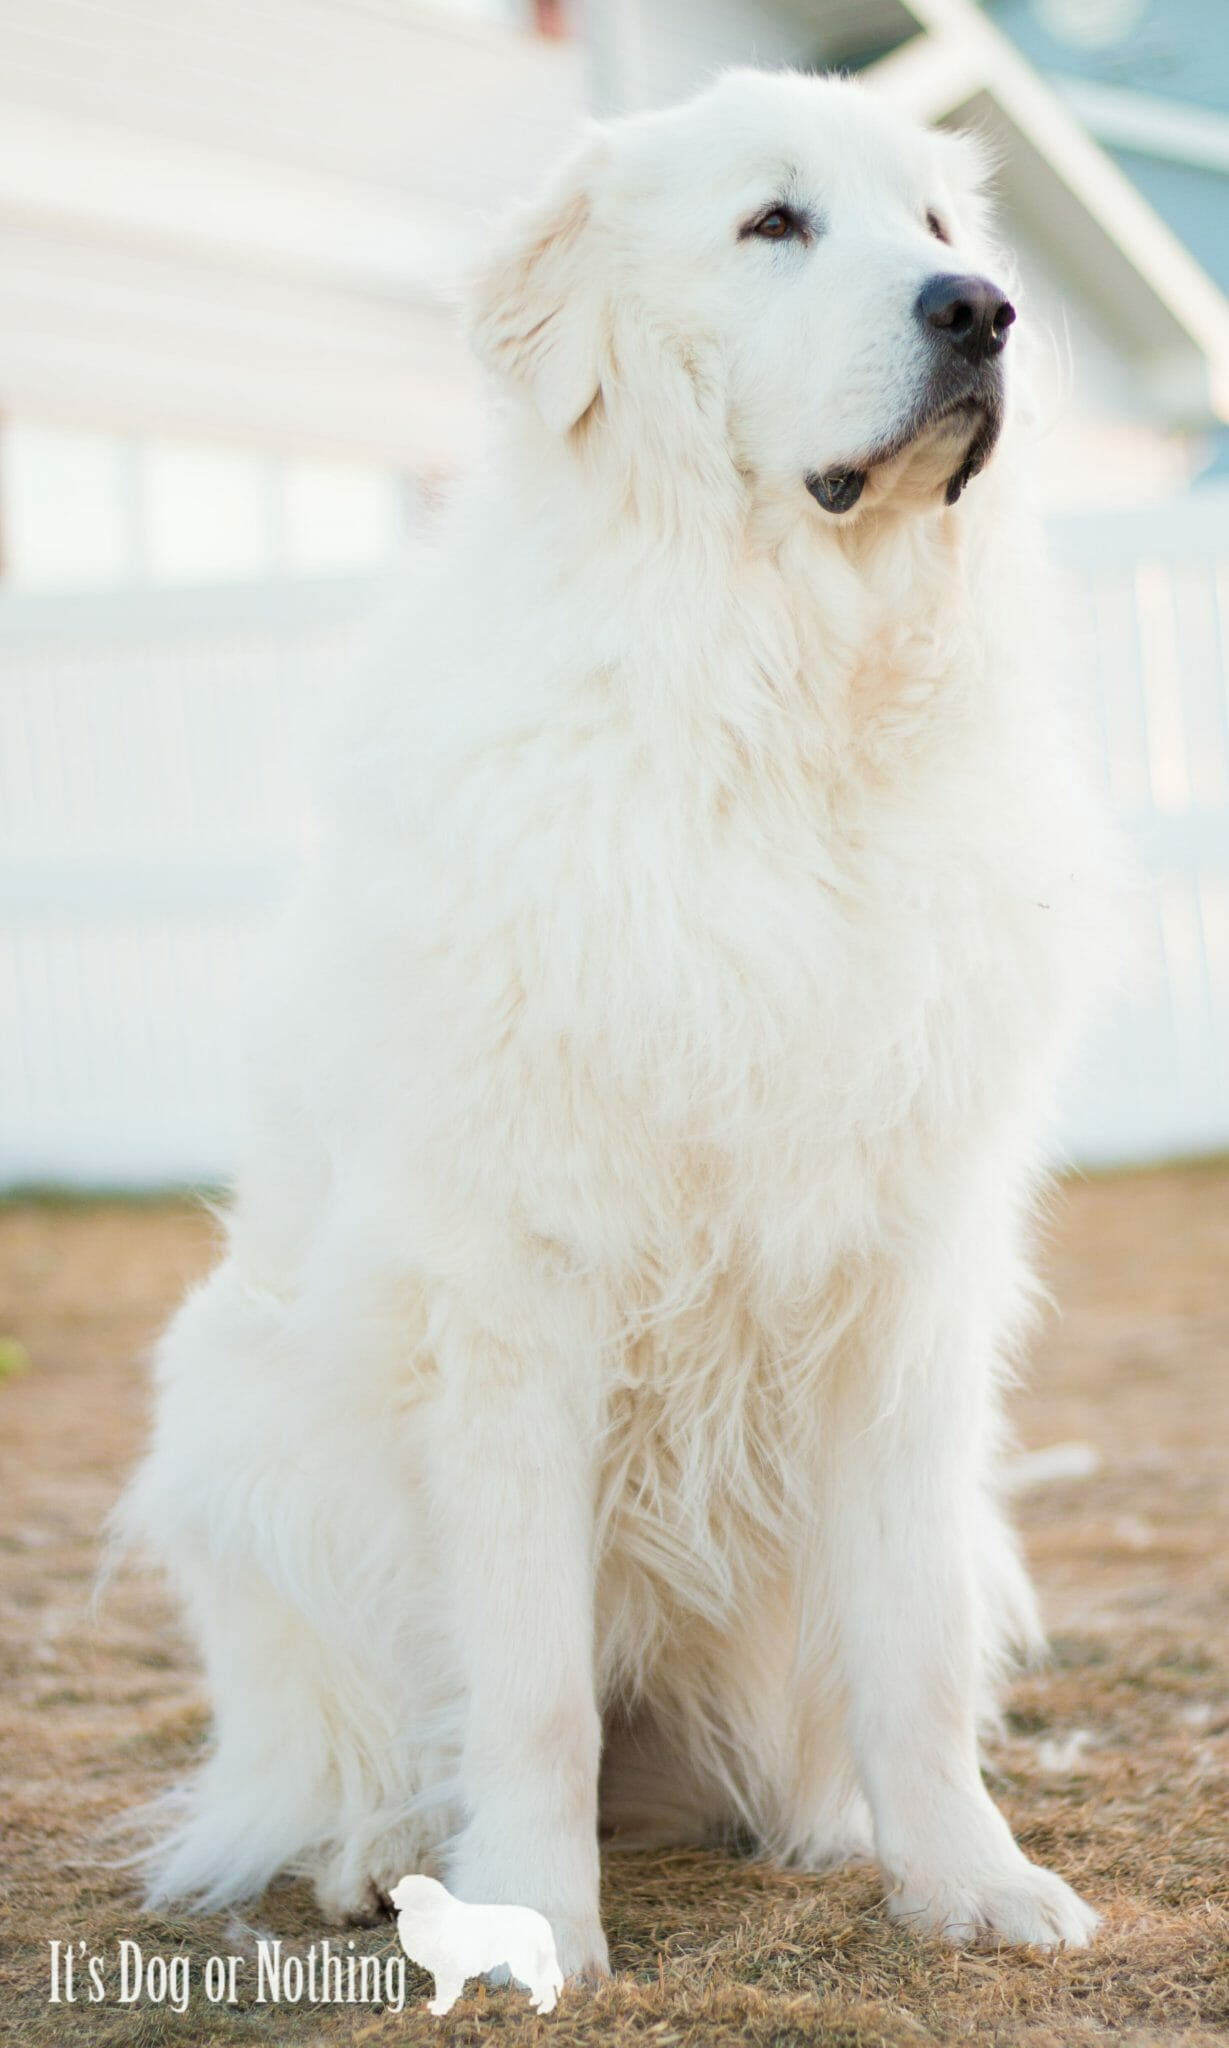 Great Pyrenees Info: A Beginner's Guide | It's Dog or Nothing  Have you thought about adding a Great Pyrenees to your family? Here's a basic guide to determine if a pyr might be a good fit!